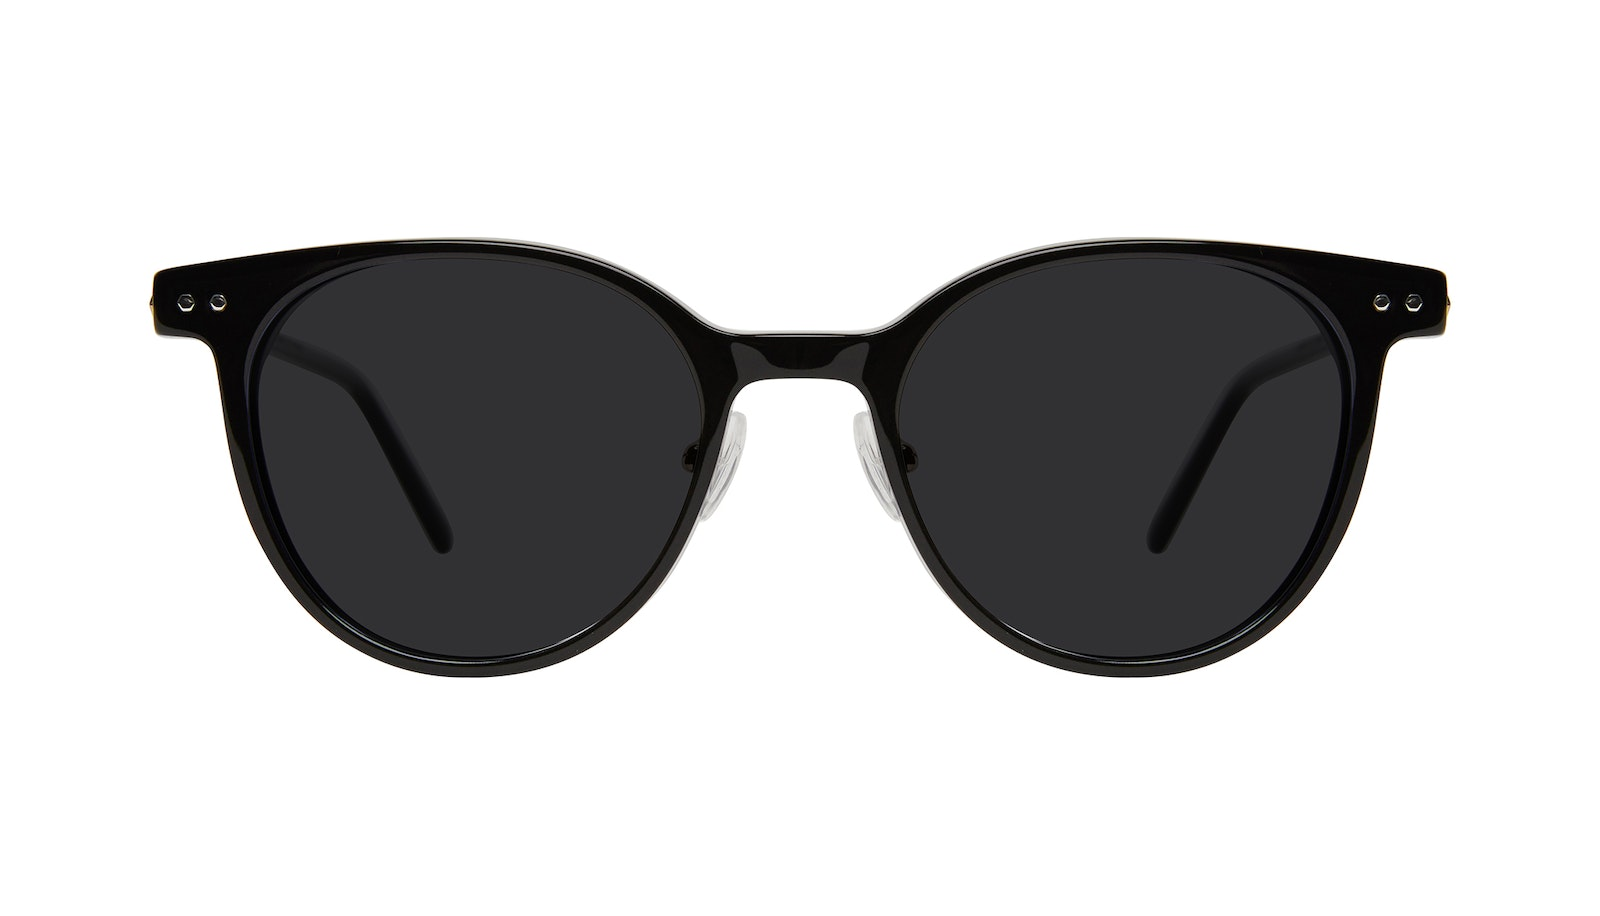 Affordable Fashion Glasses Round Sunglasses Women Lightheart Onyx